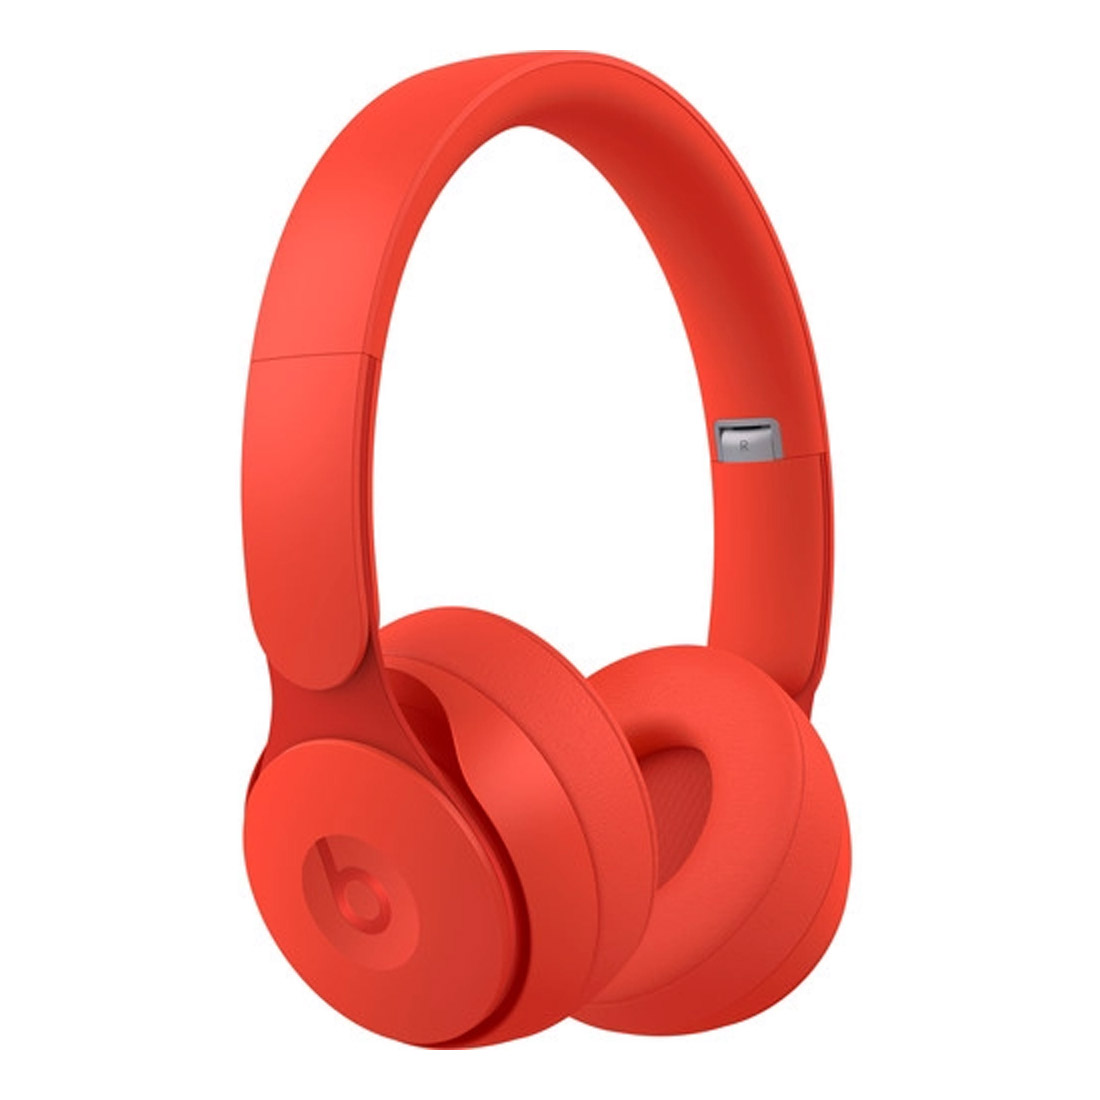 Beats Solo Pro Wireless Noise Cancelling Headphones - Red